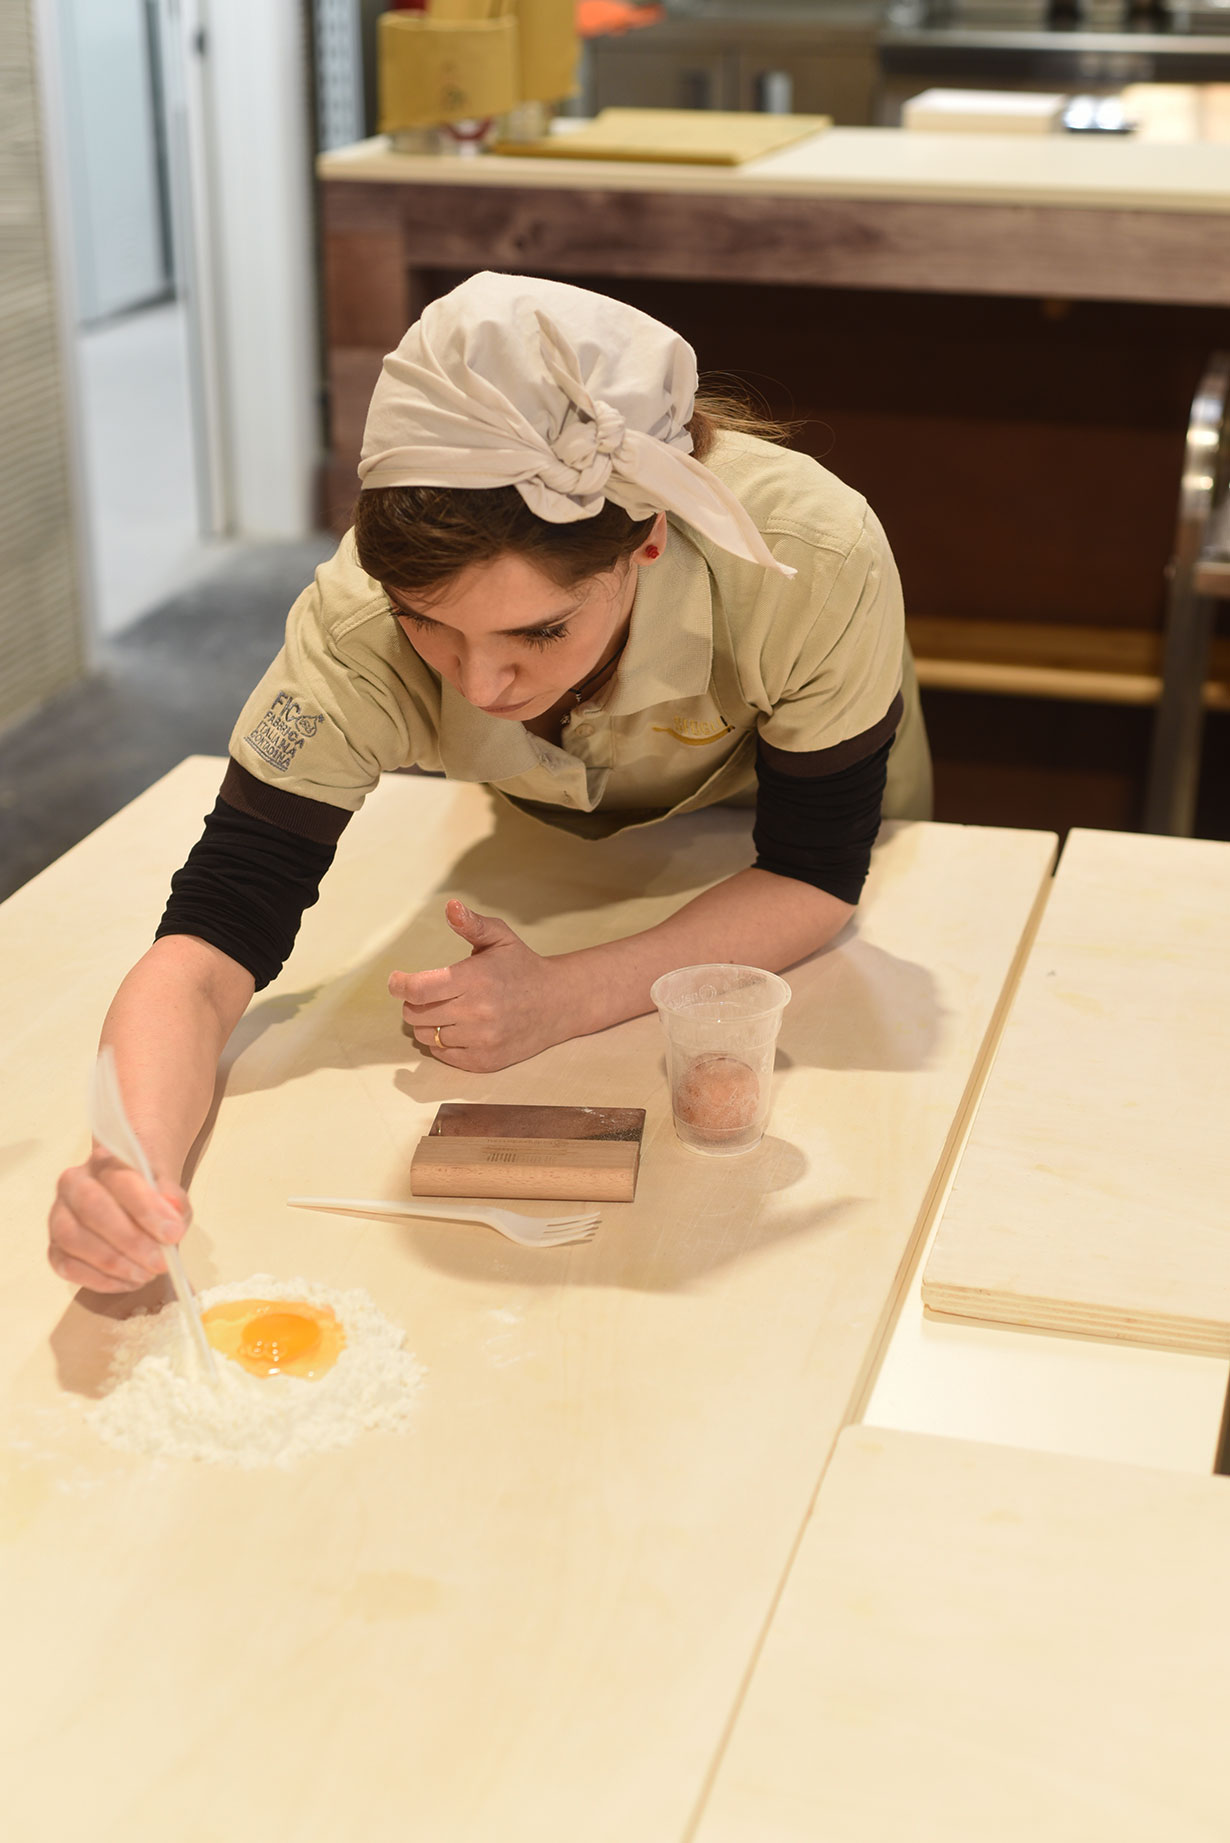 Pasta making at FICO Eataly